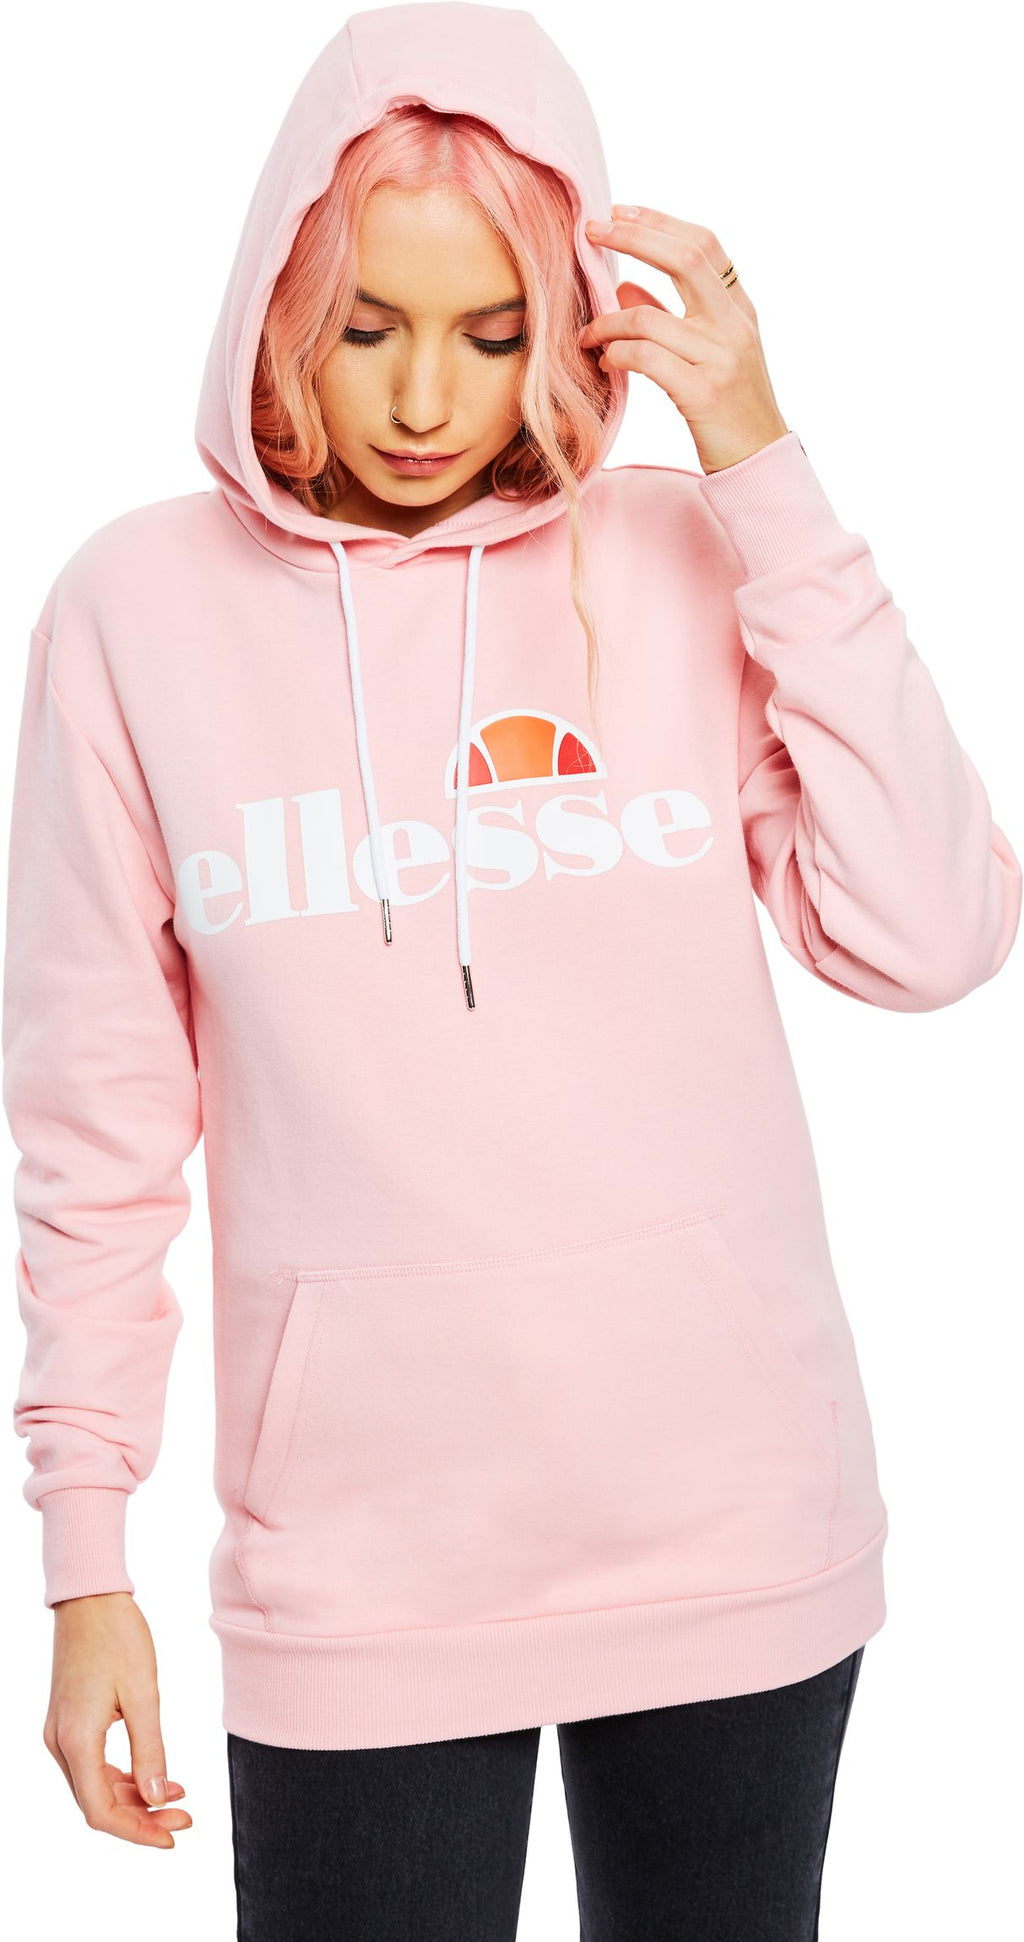 Ellesse Women's Torices Hoodie Light Pink